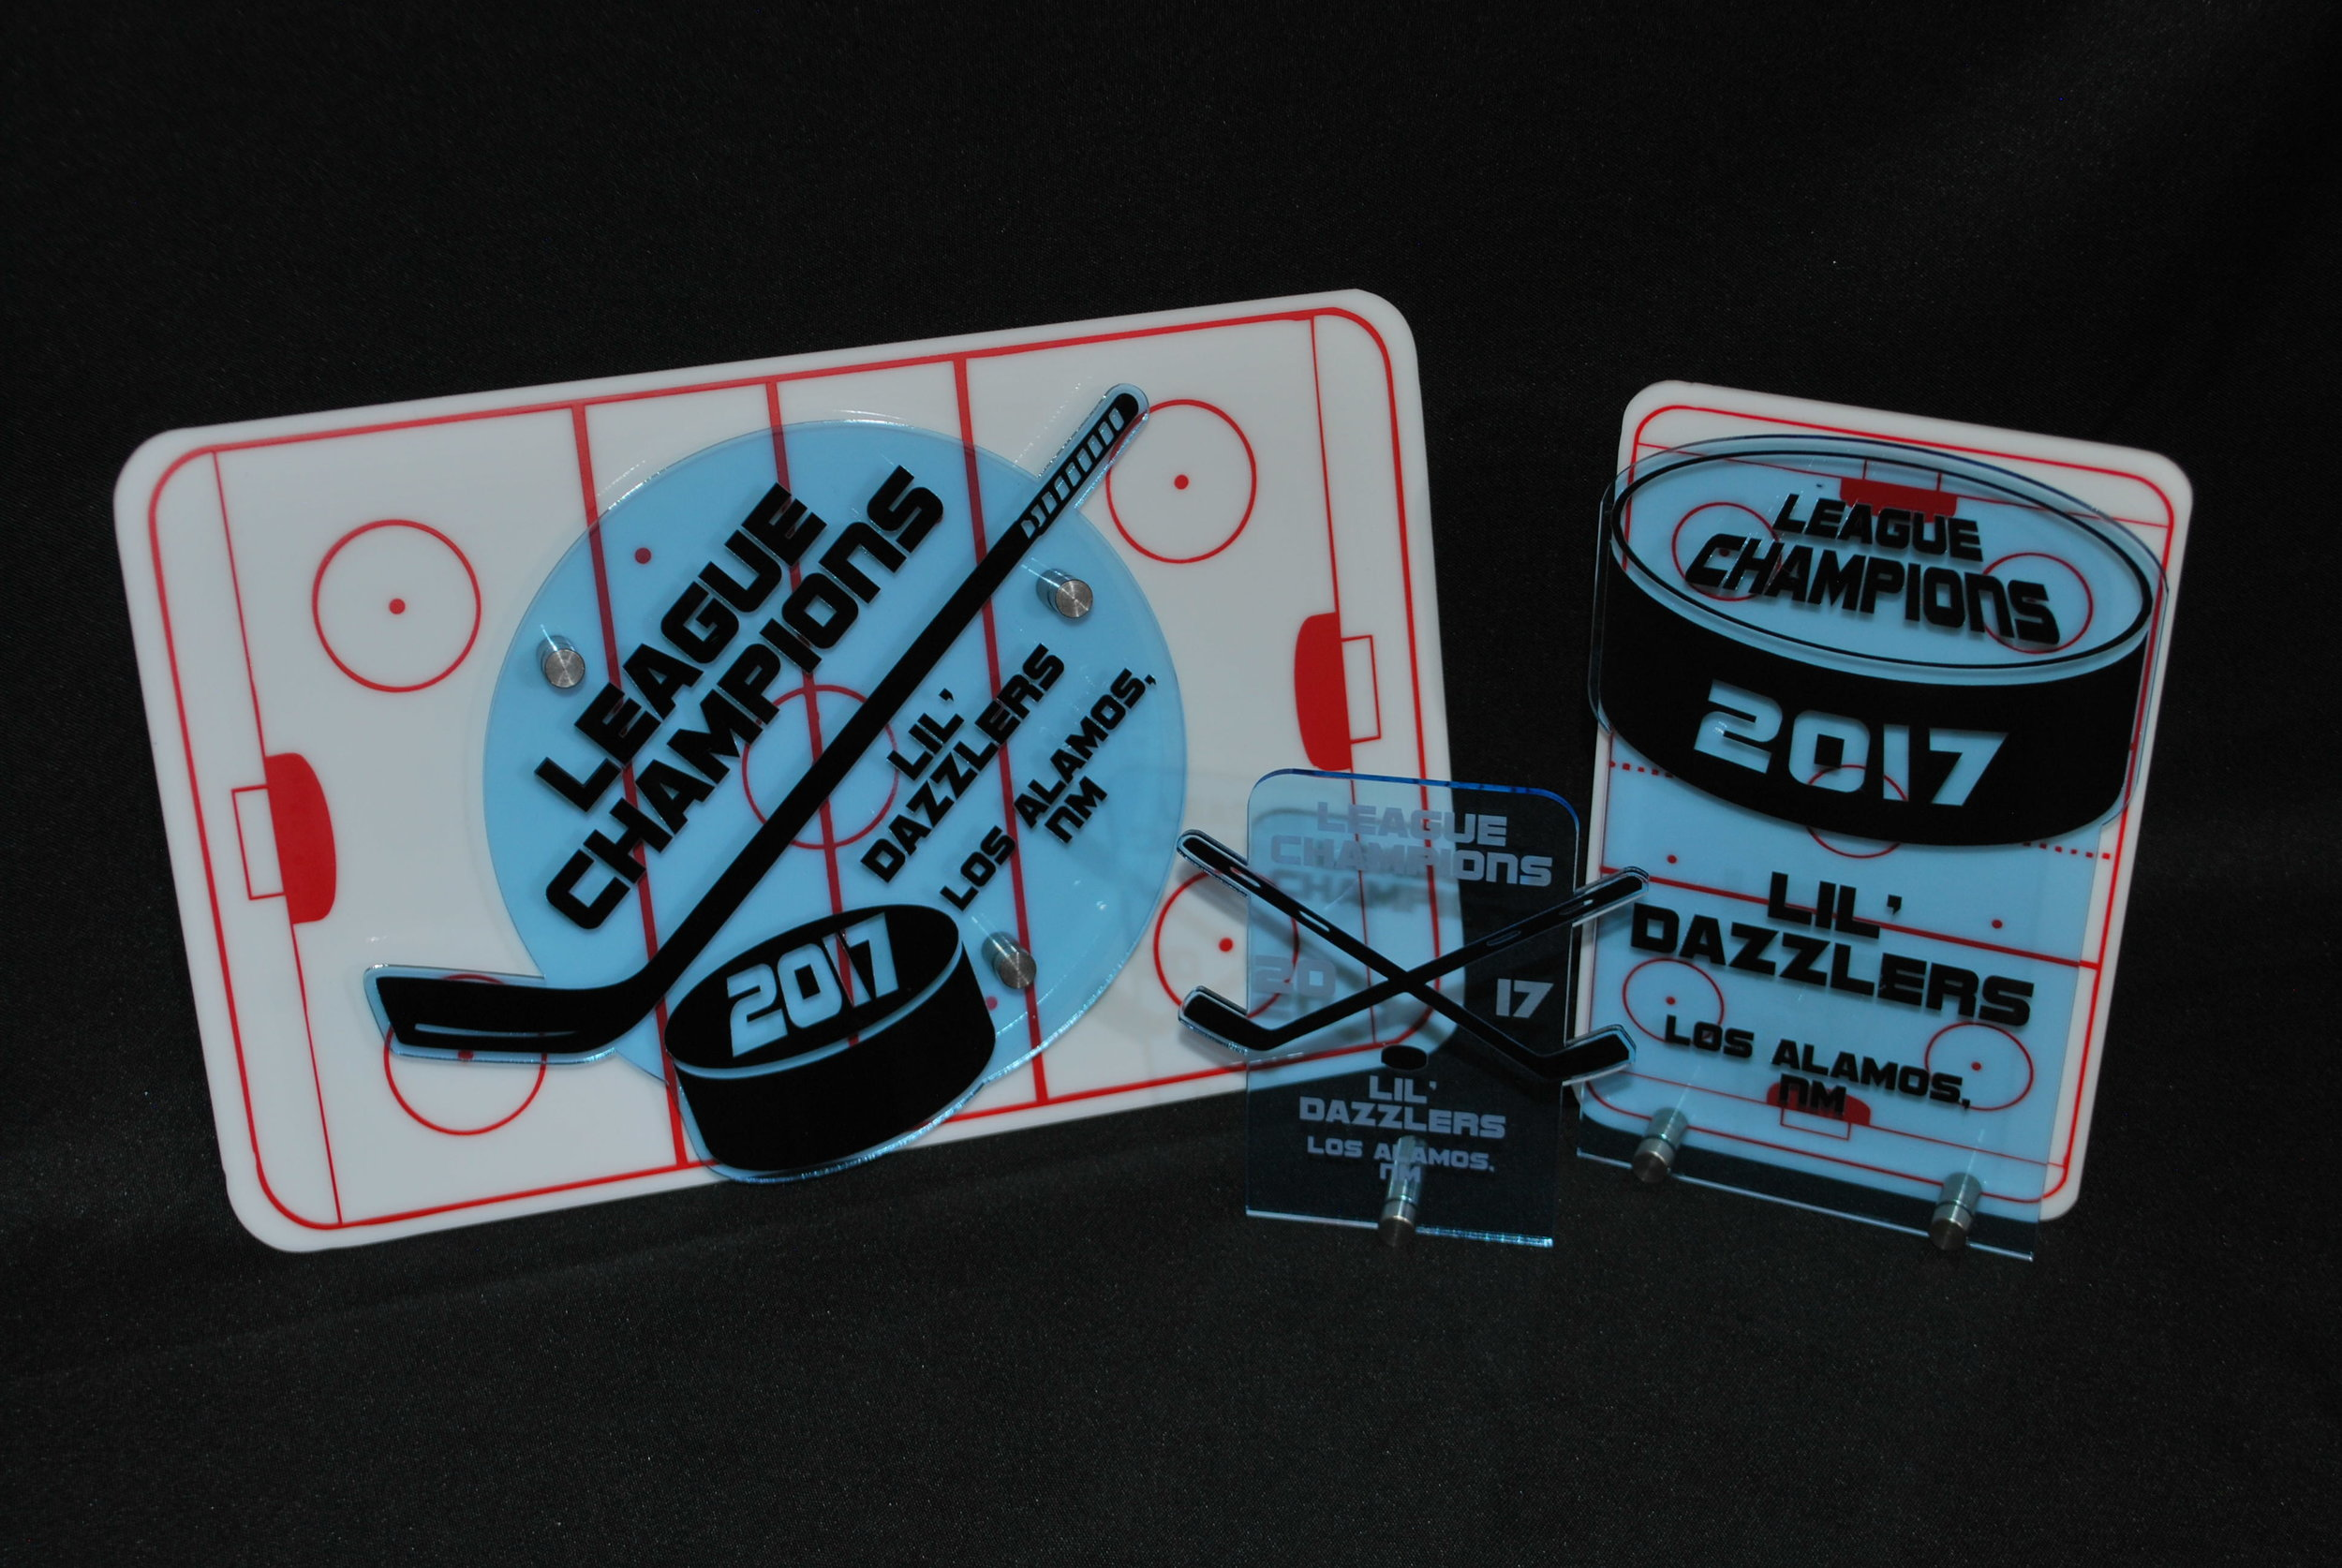 Youth Hockey - Stock Hockey Award Designs (Small, Medium, Large)  Contact us for pricing information.